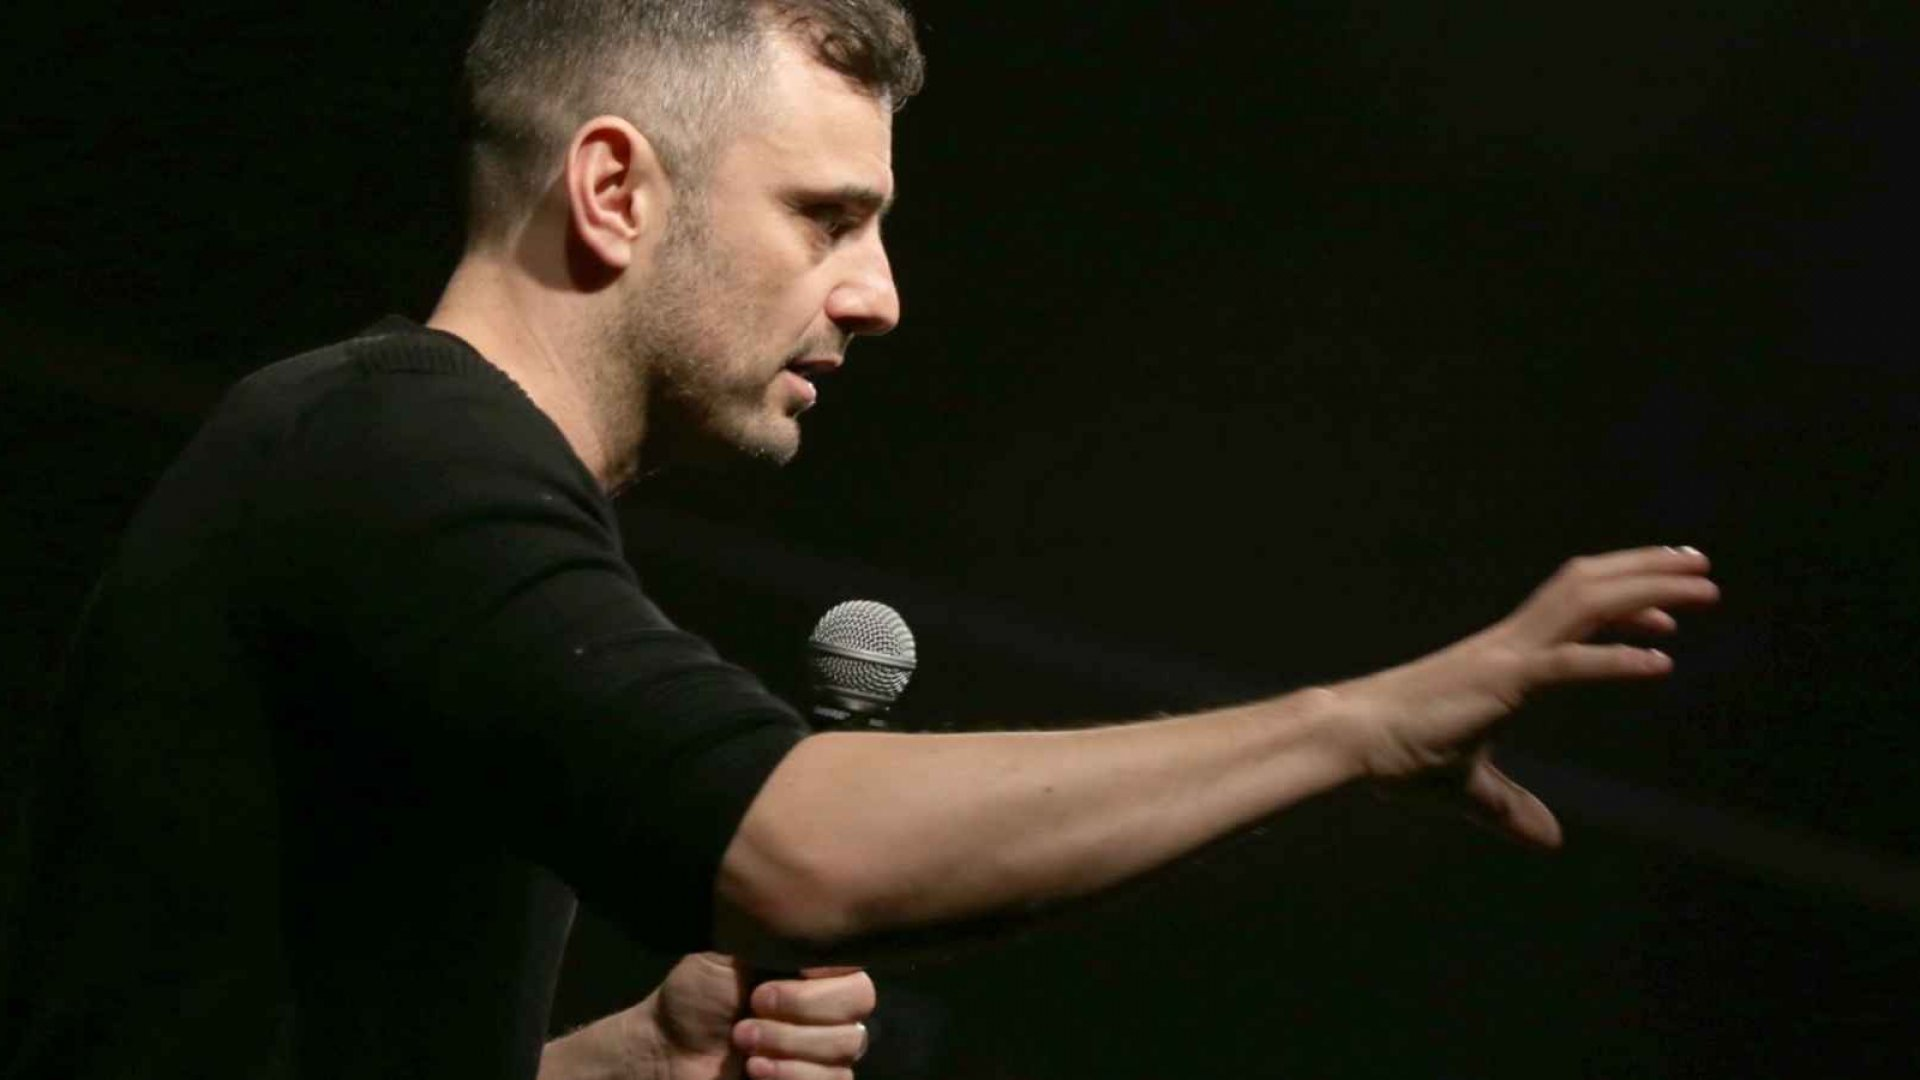 7 Things Gary Vaynerchuk Taught Me In The Boardroom